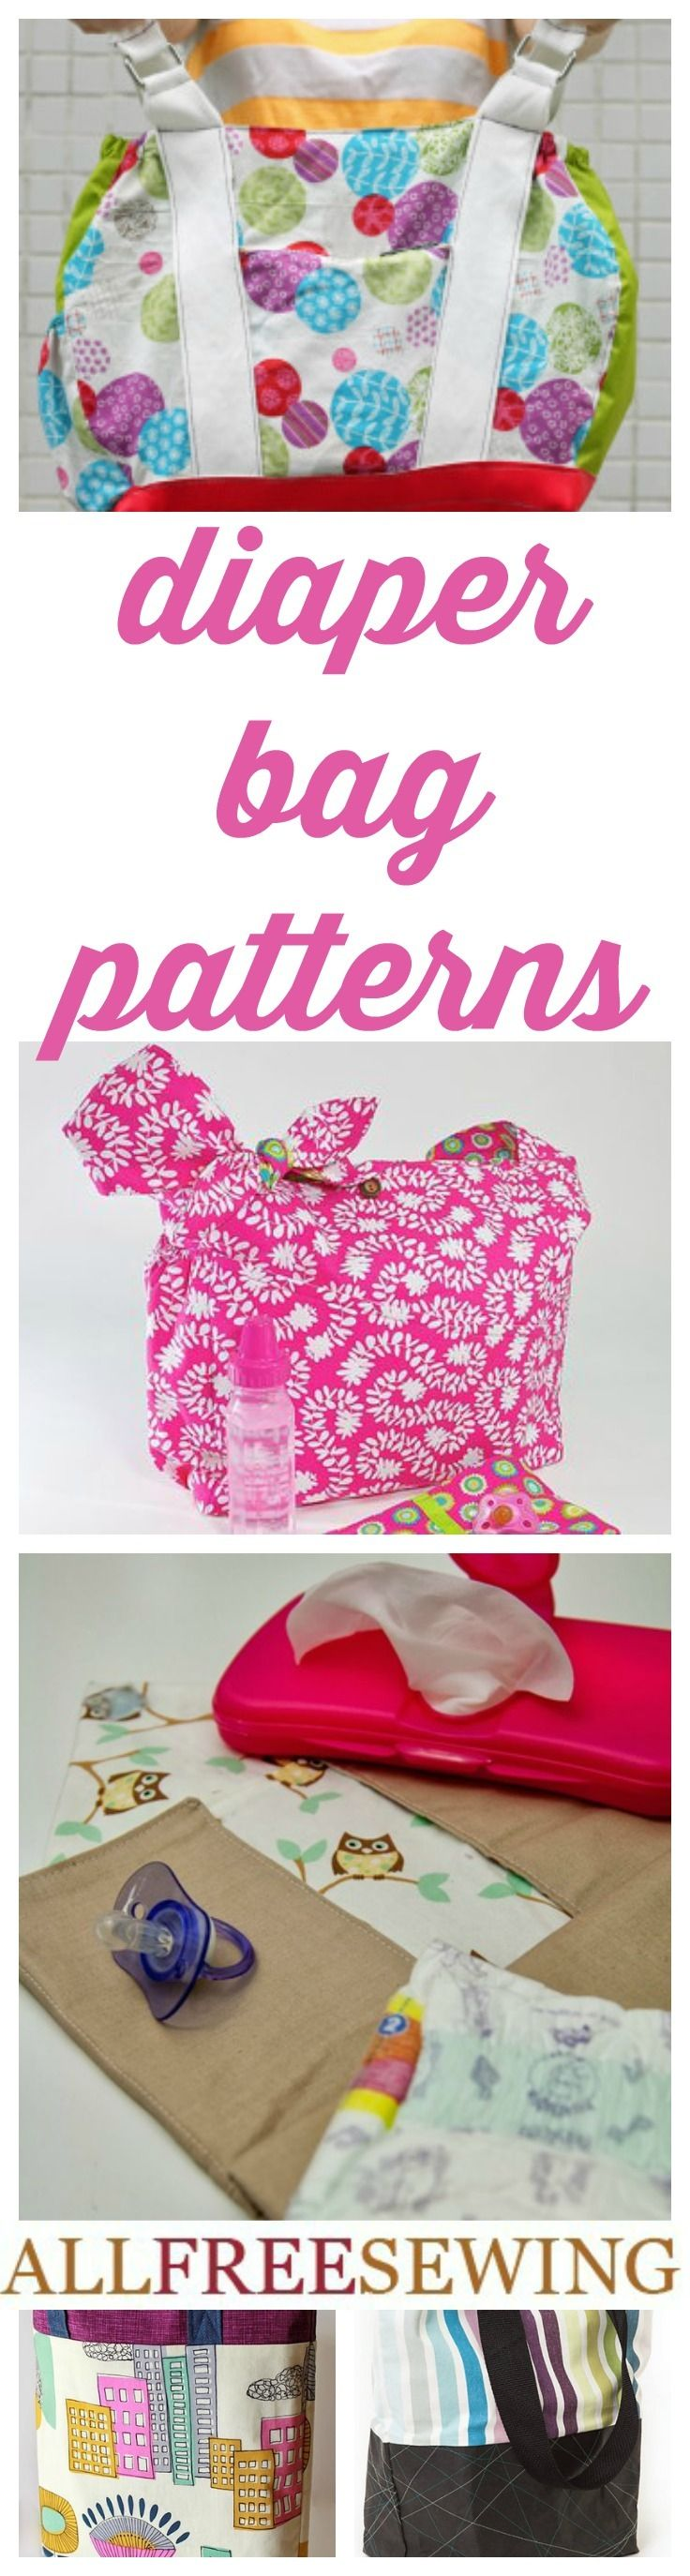 26 Diaper Bag Patterns and DIY Changing Pad Ideas | AllFreeSewing.com